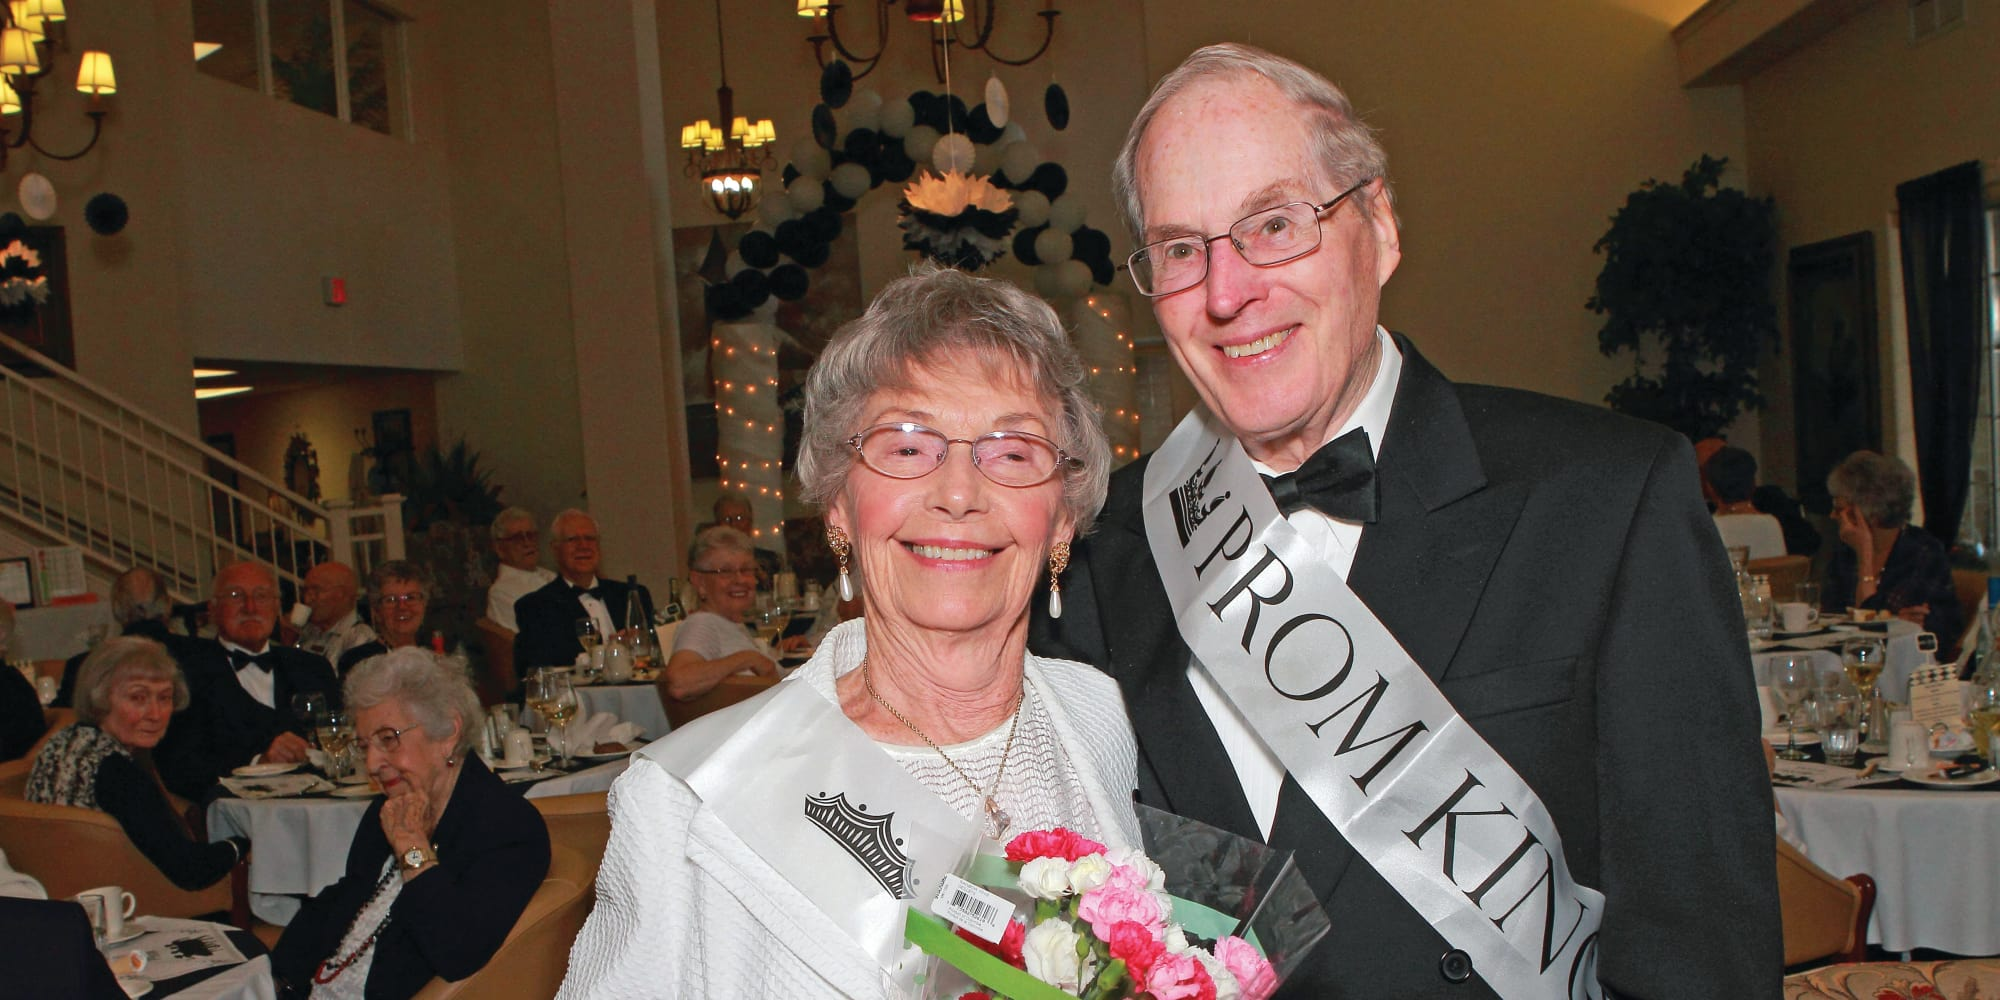 Prom king and queen at The Palms at LaQuinta Gracious Retirement Living in La Quinta, California